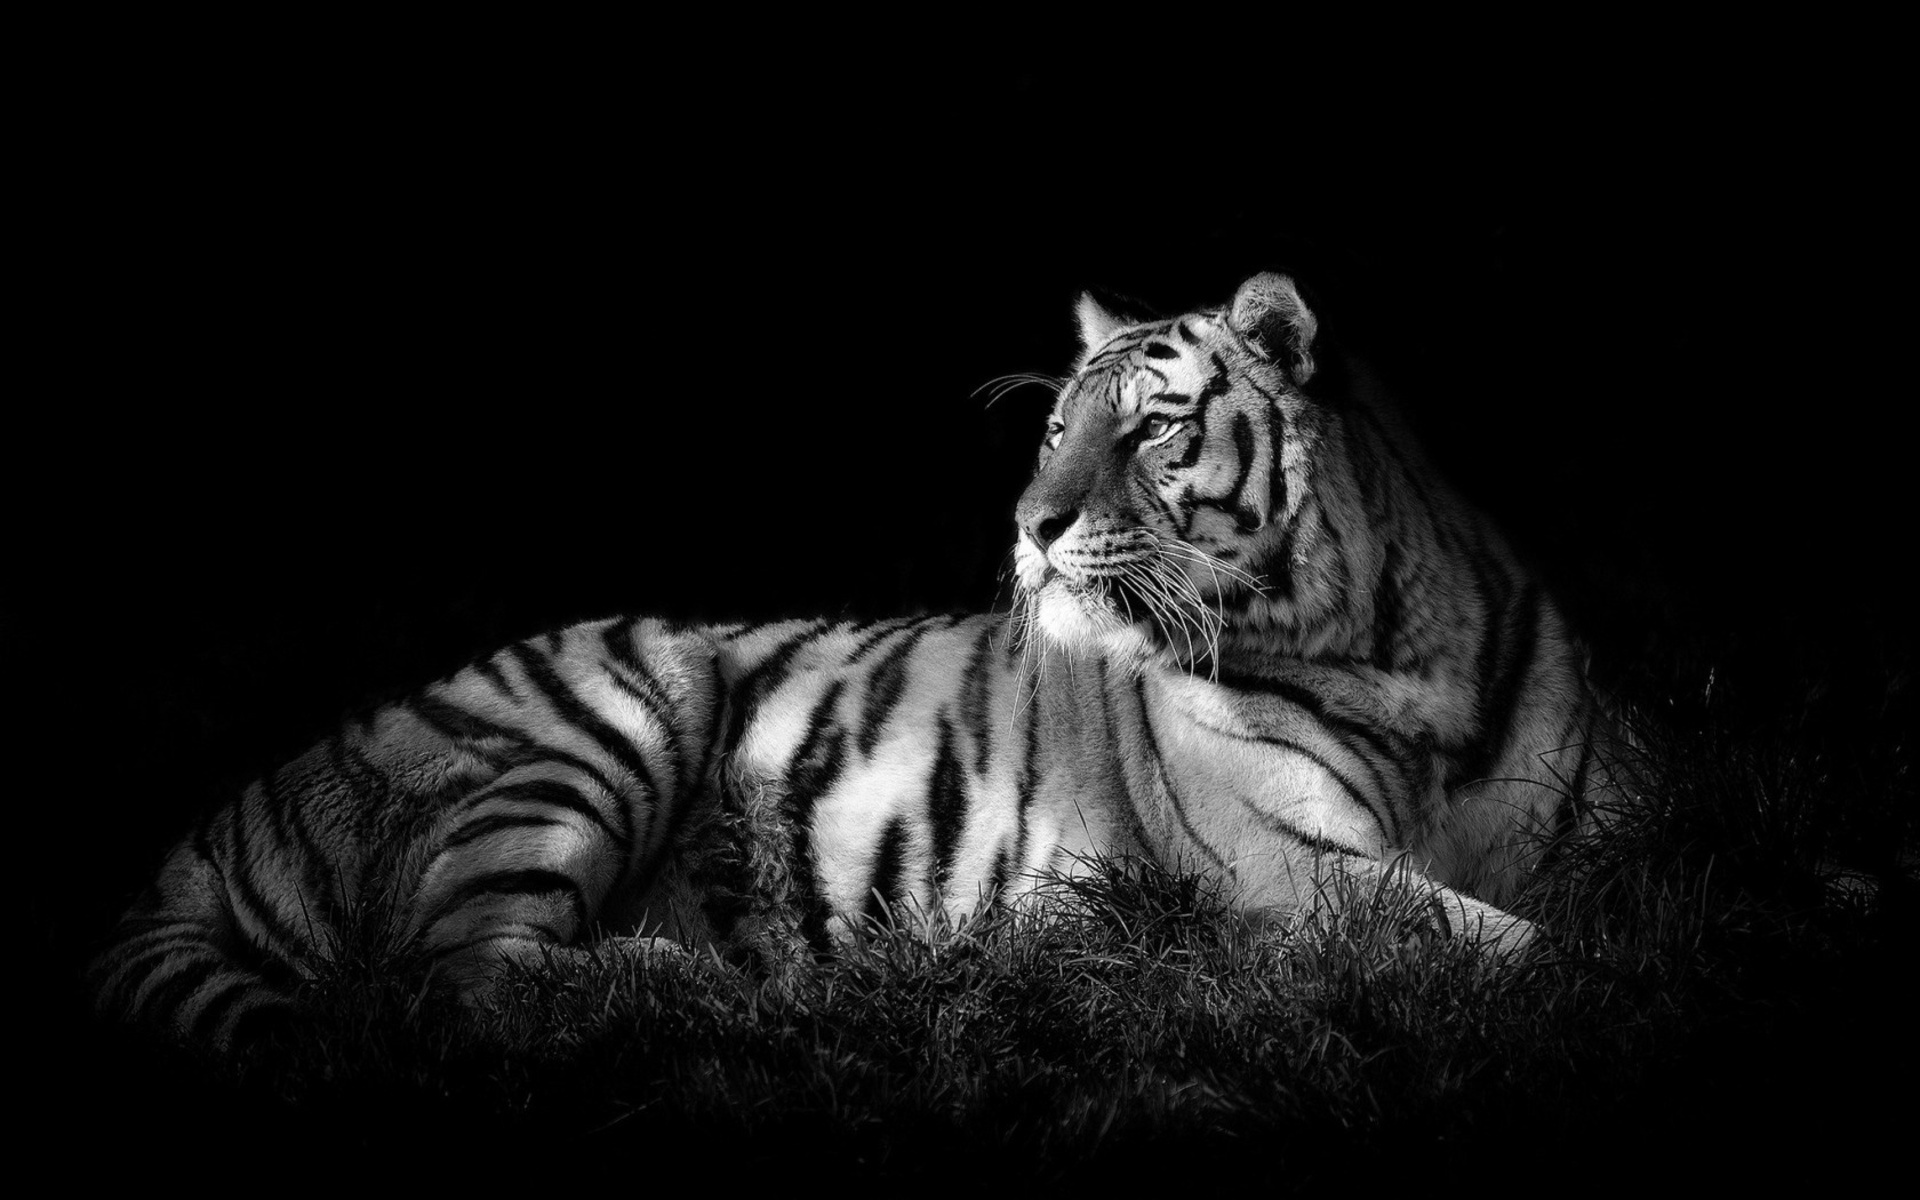 Nature Lion Big Cats Fury Angry Portrait Monochrome: Bw Wallpaper Tiger - HD Desktop Wallpapers